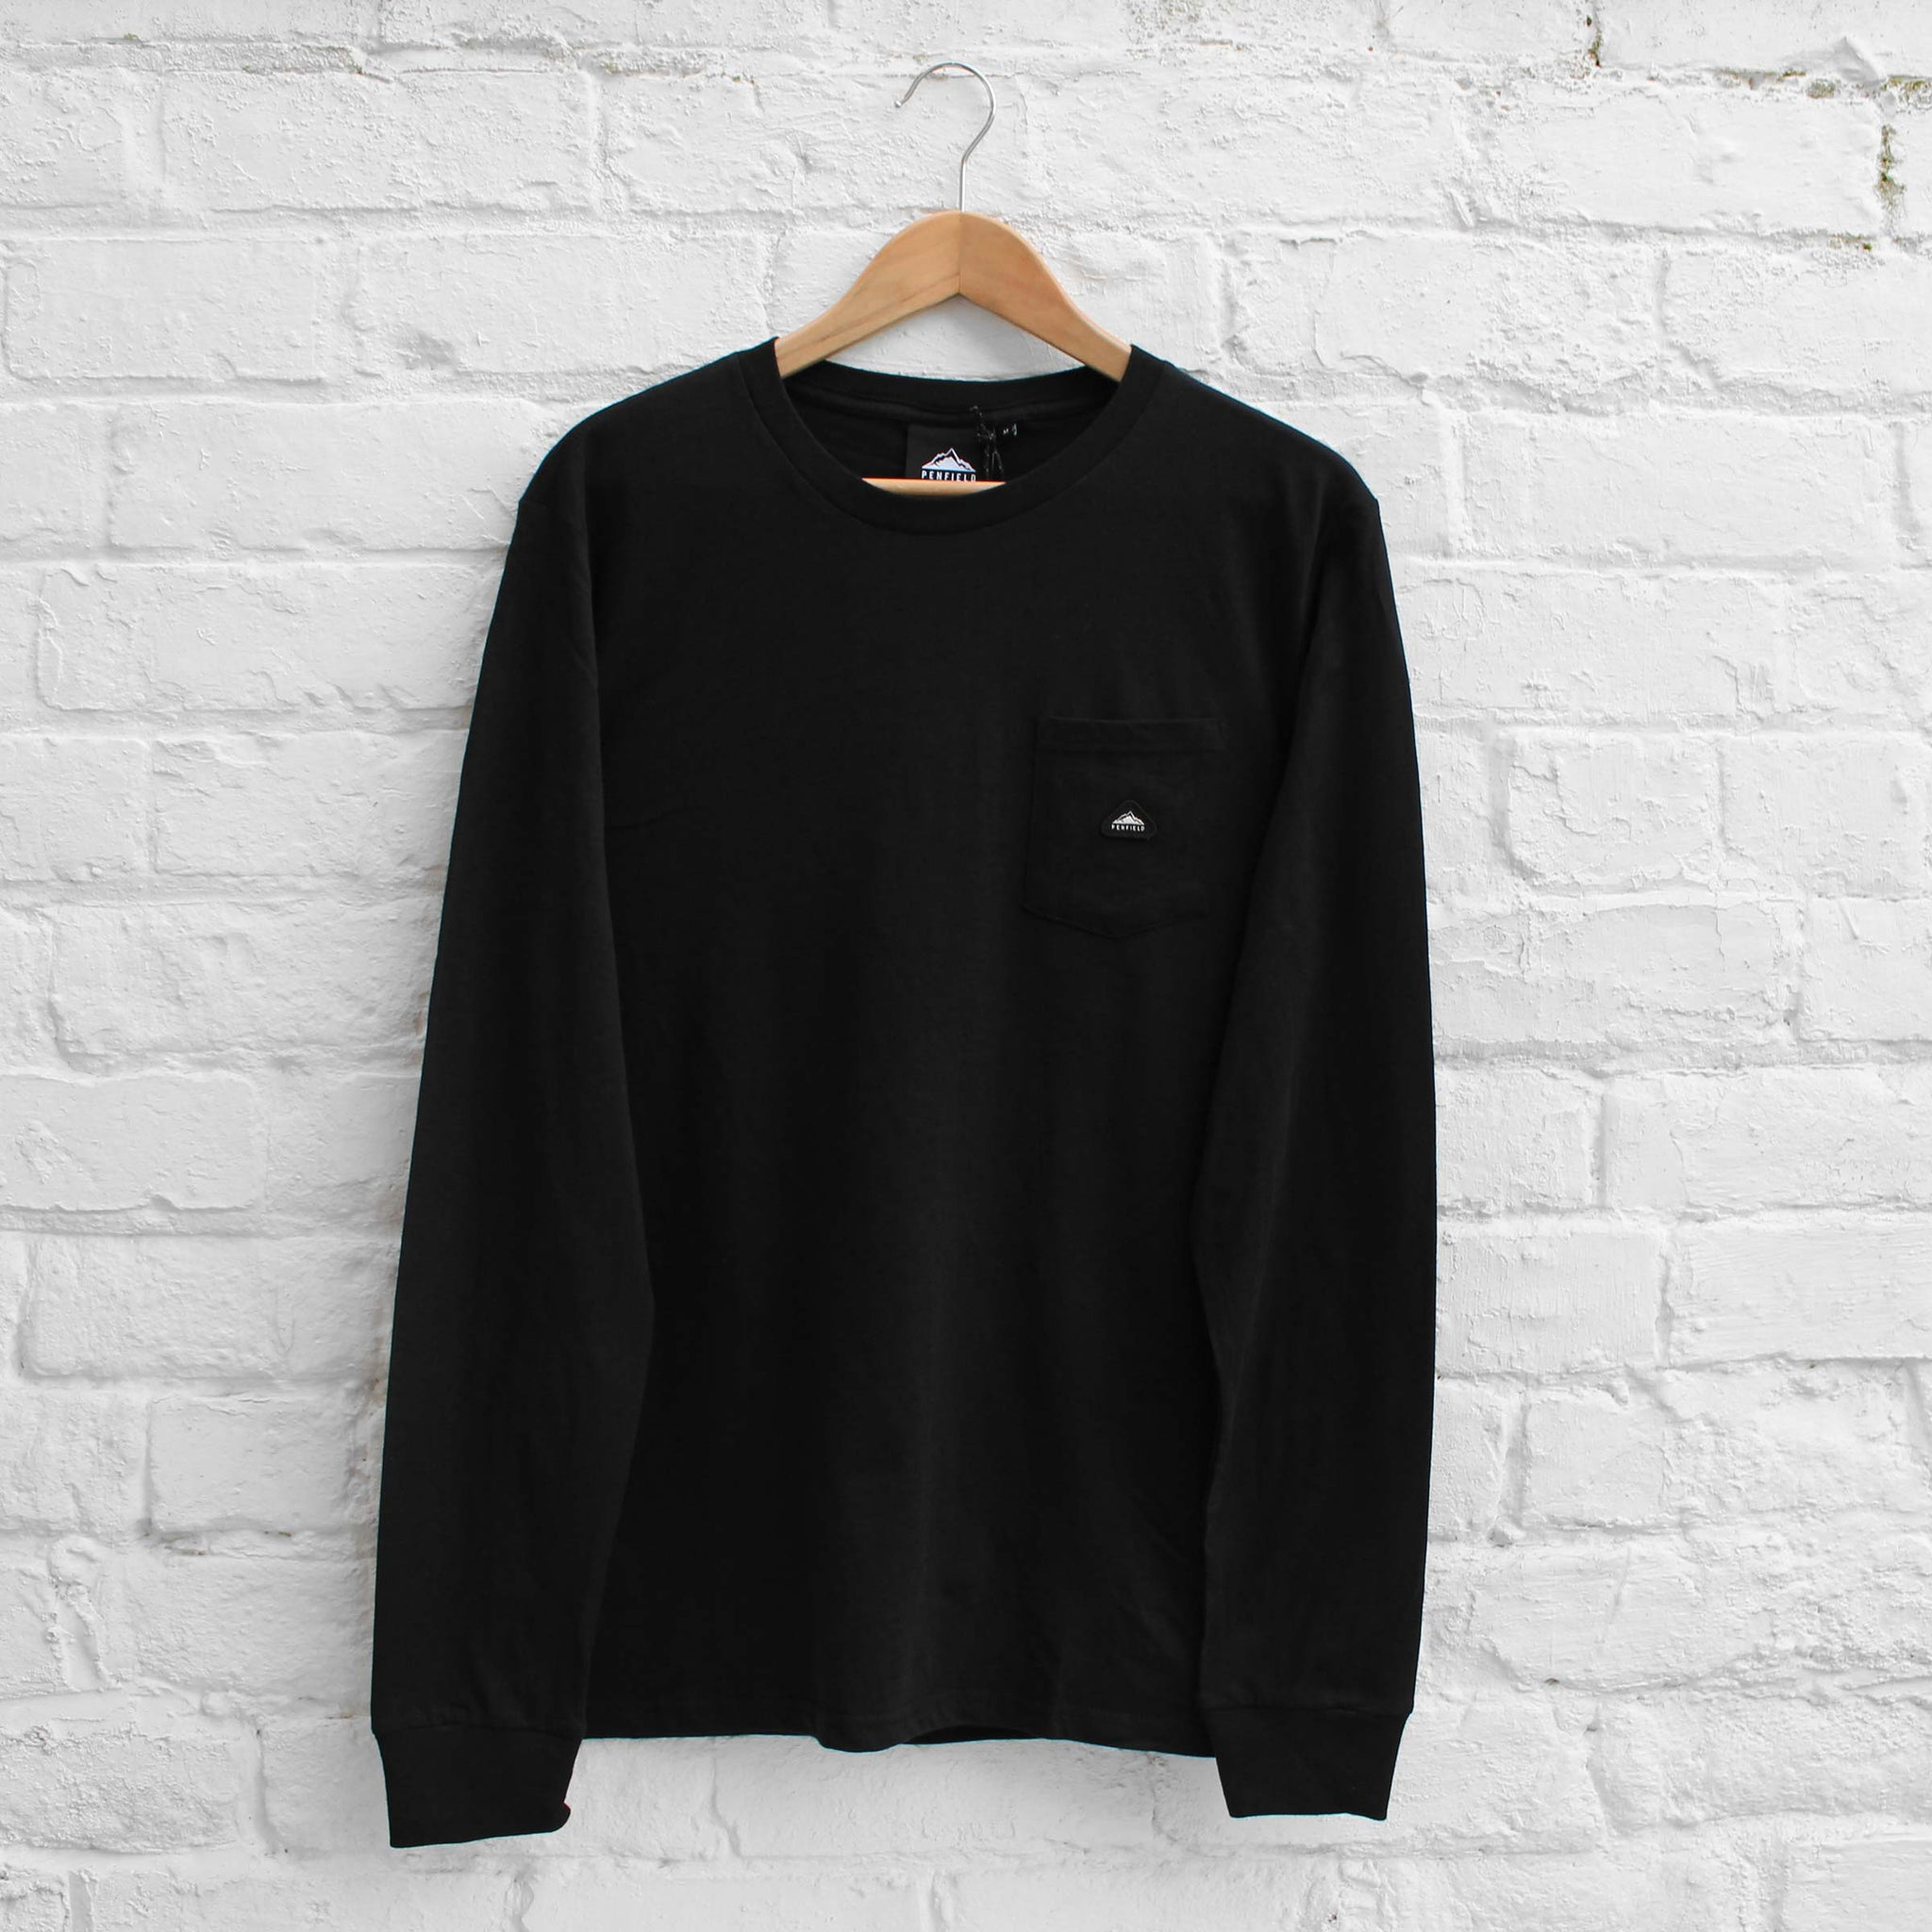 Penfield Northbridge Long Sleeve T-Shirt Black